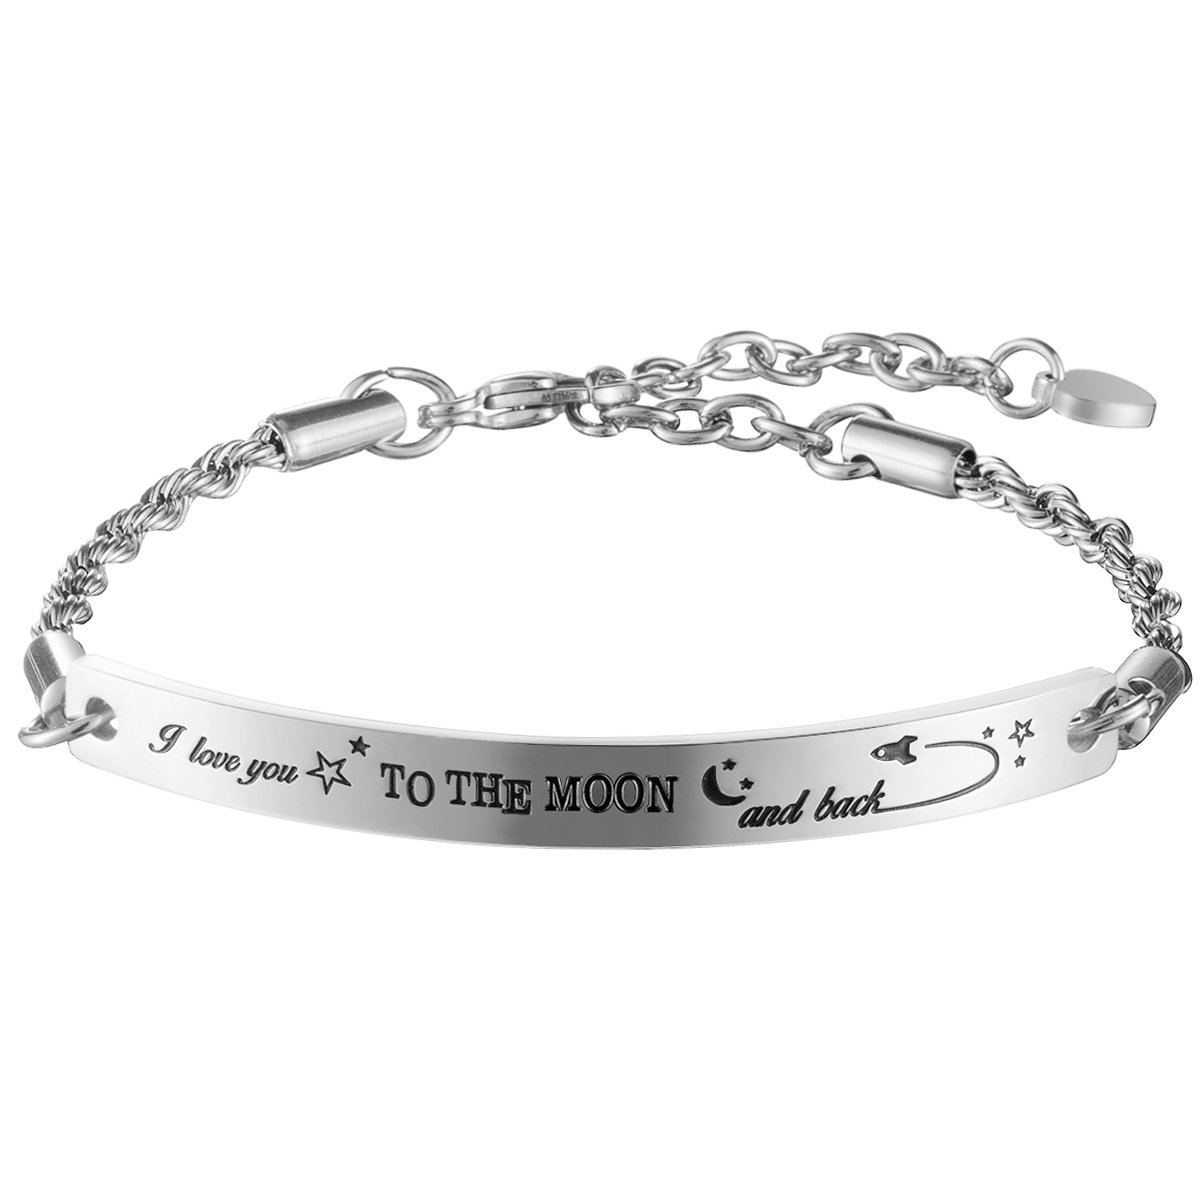 omodofo I Love You to The Moon and Back Inspirational Quoto Bar Bracelet Engraved Adjustable Chain Jewelry for Women Girls